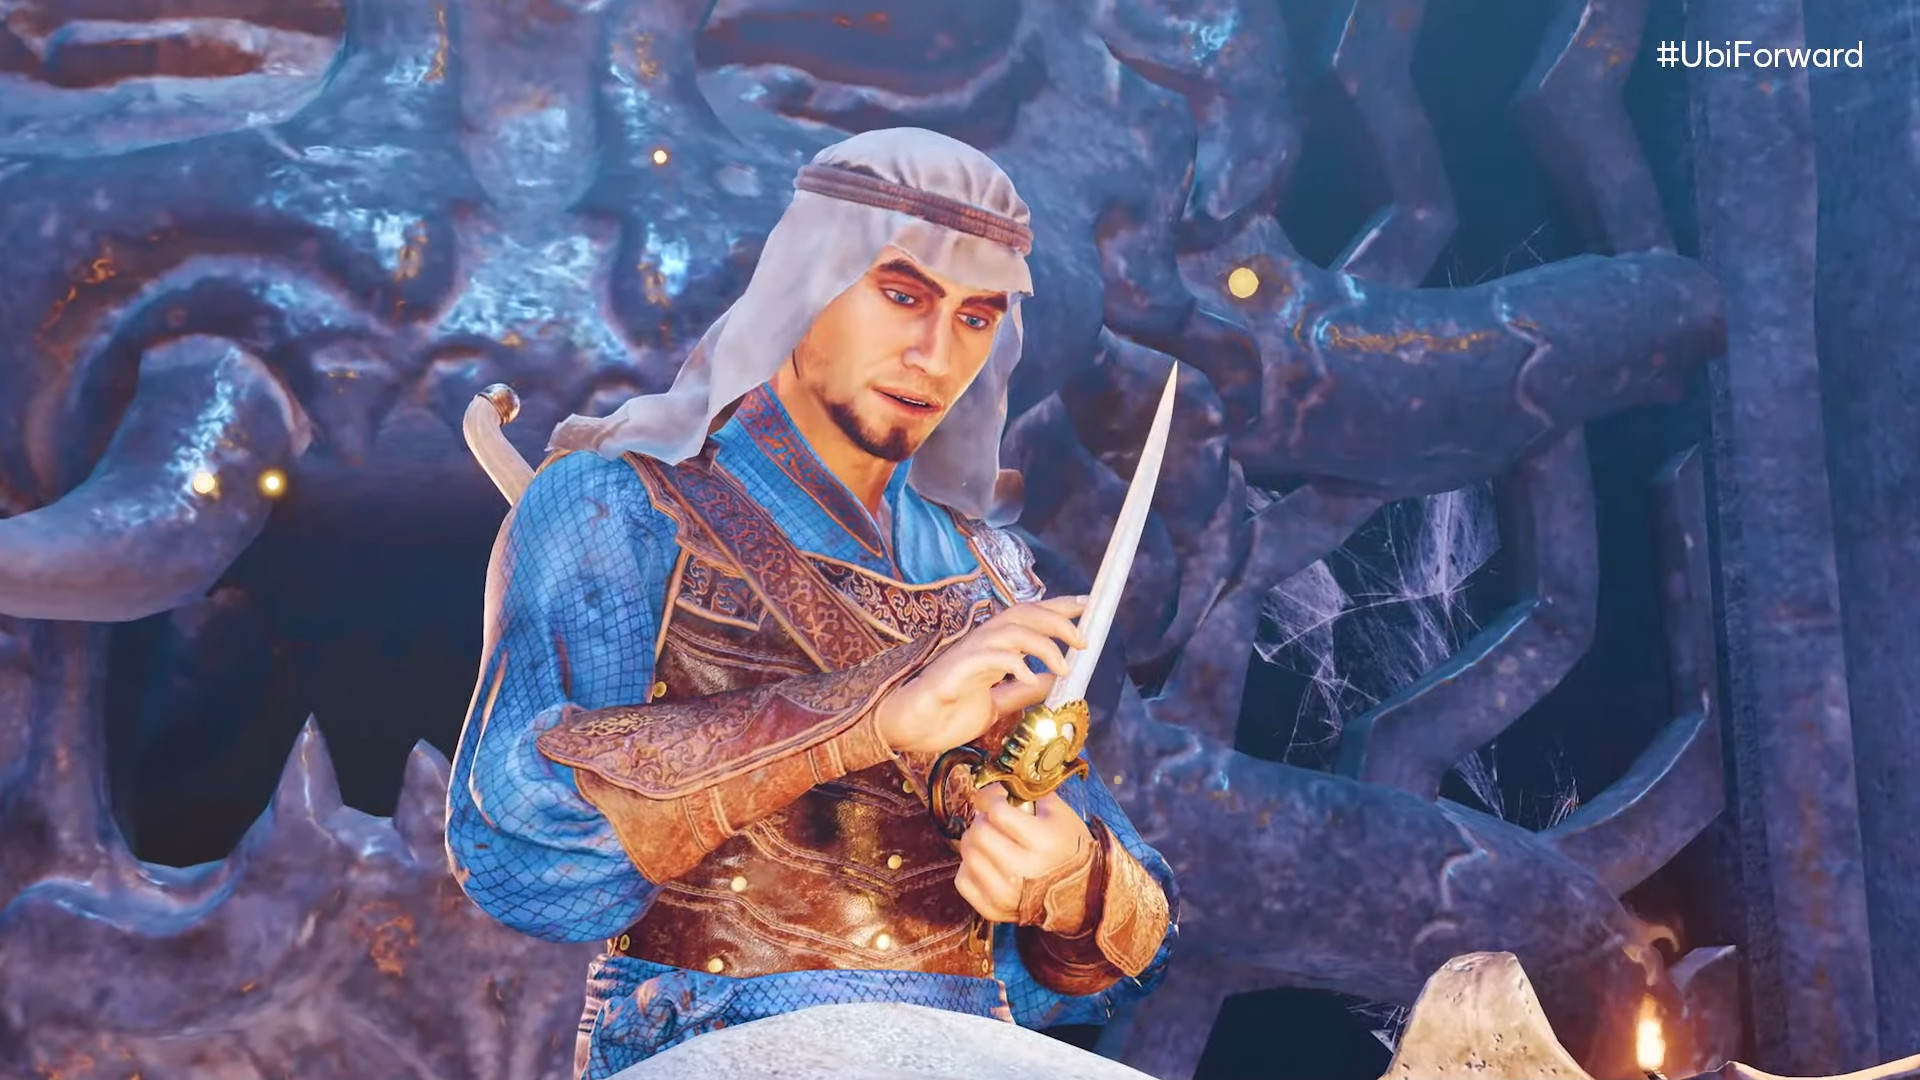 Prince of Persia: Sands of Time Remake is coming January 2021